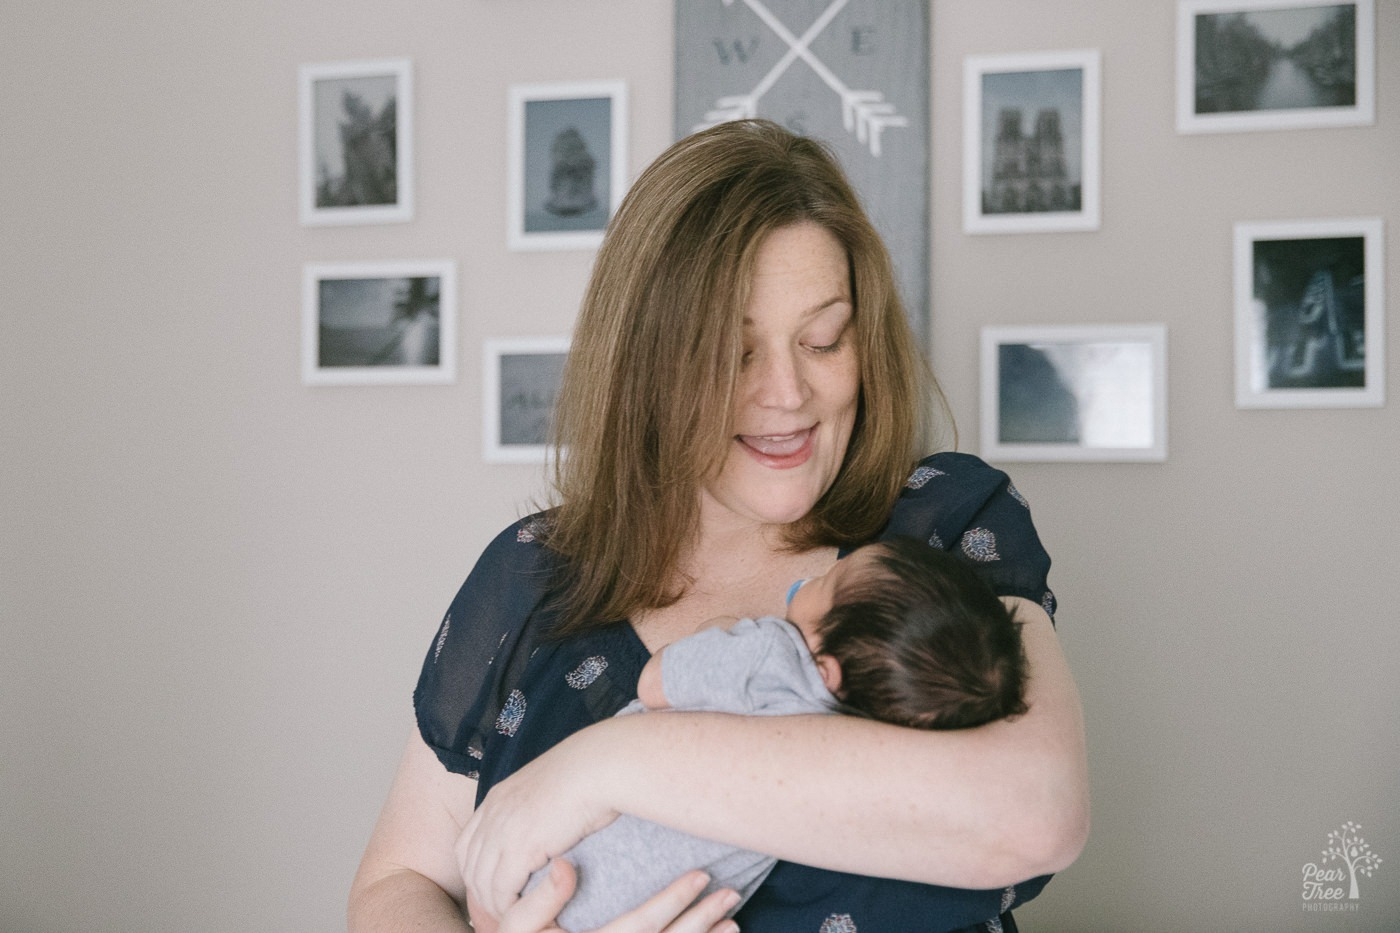 Mom holding her newborn baby boy and singing to him.